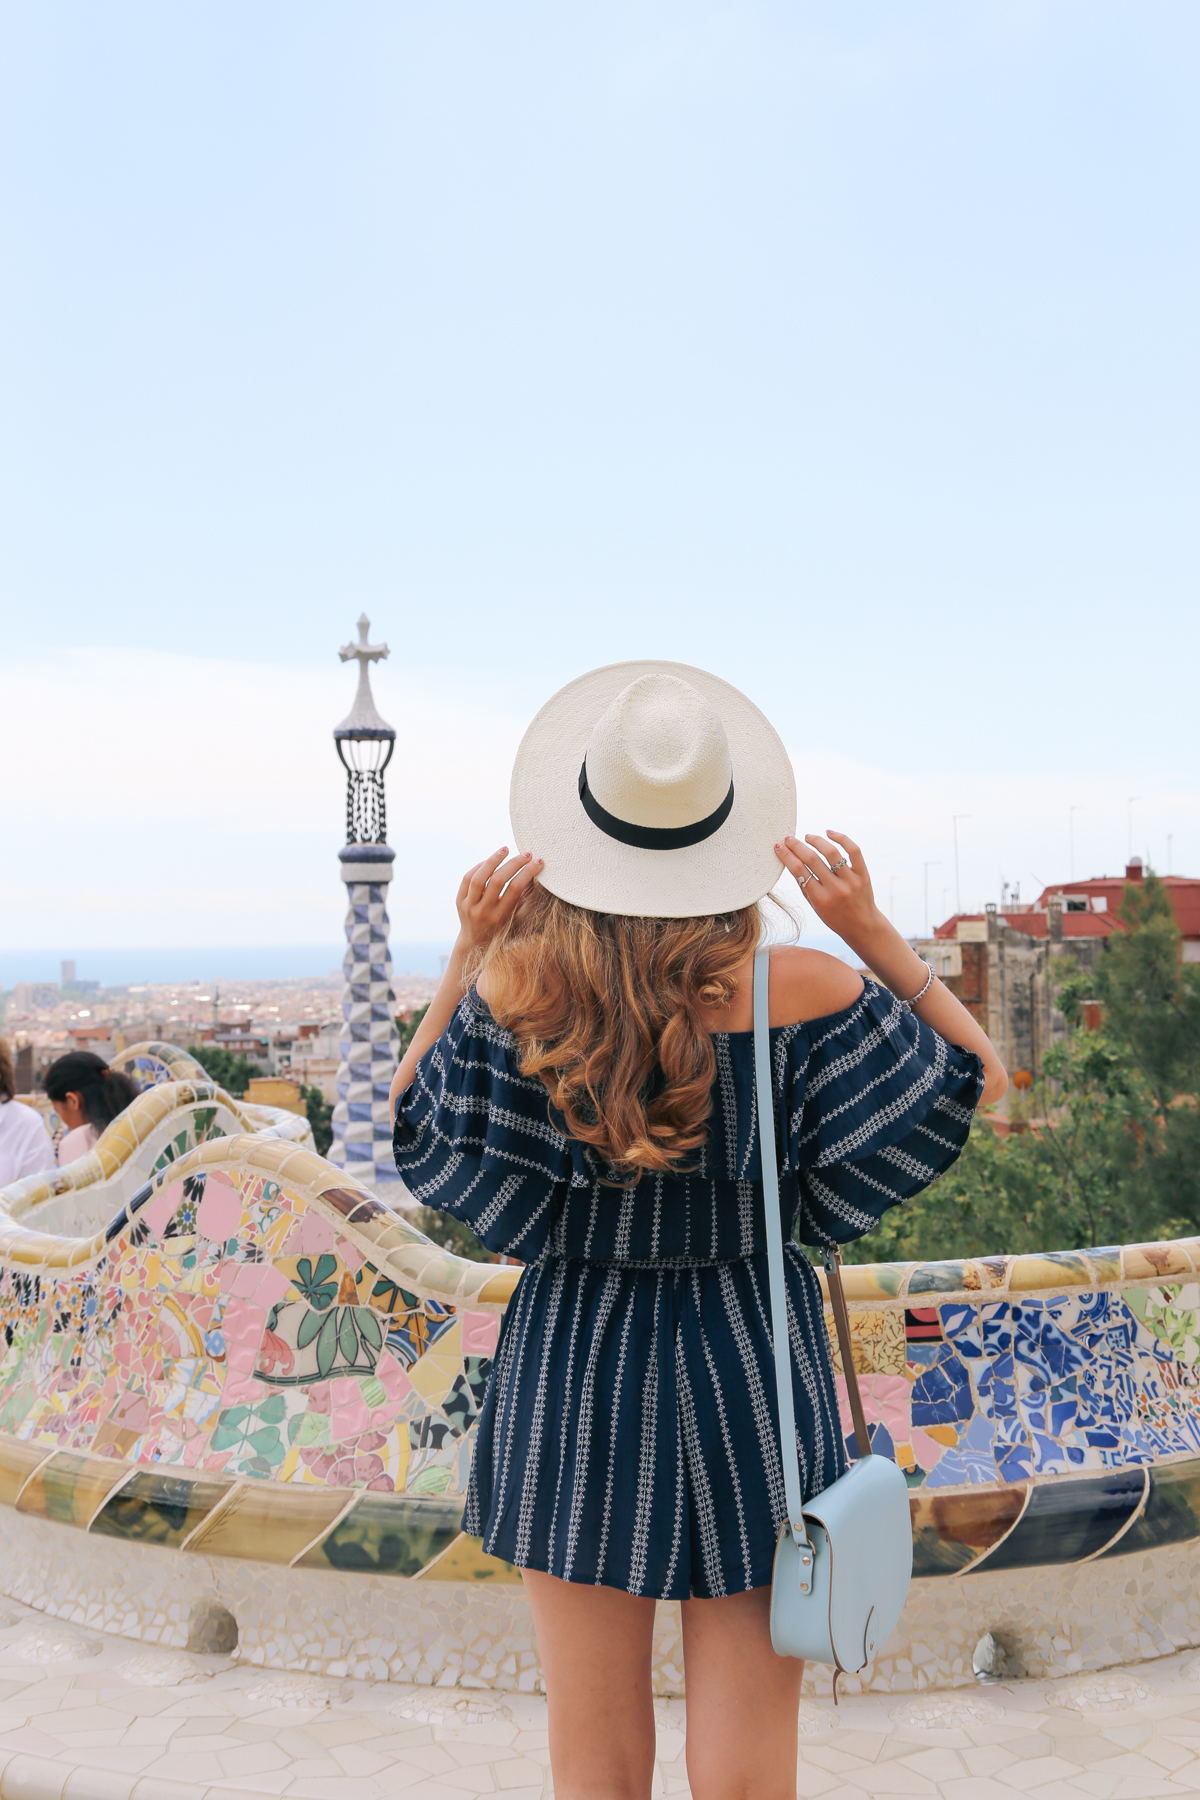 Travel Guide to Park Guell